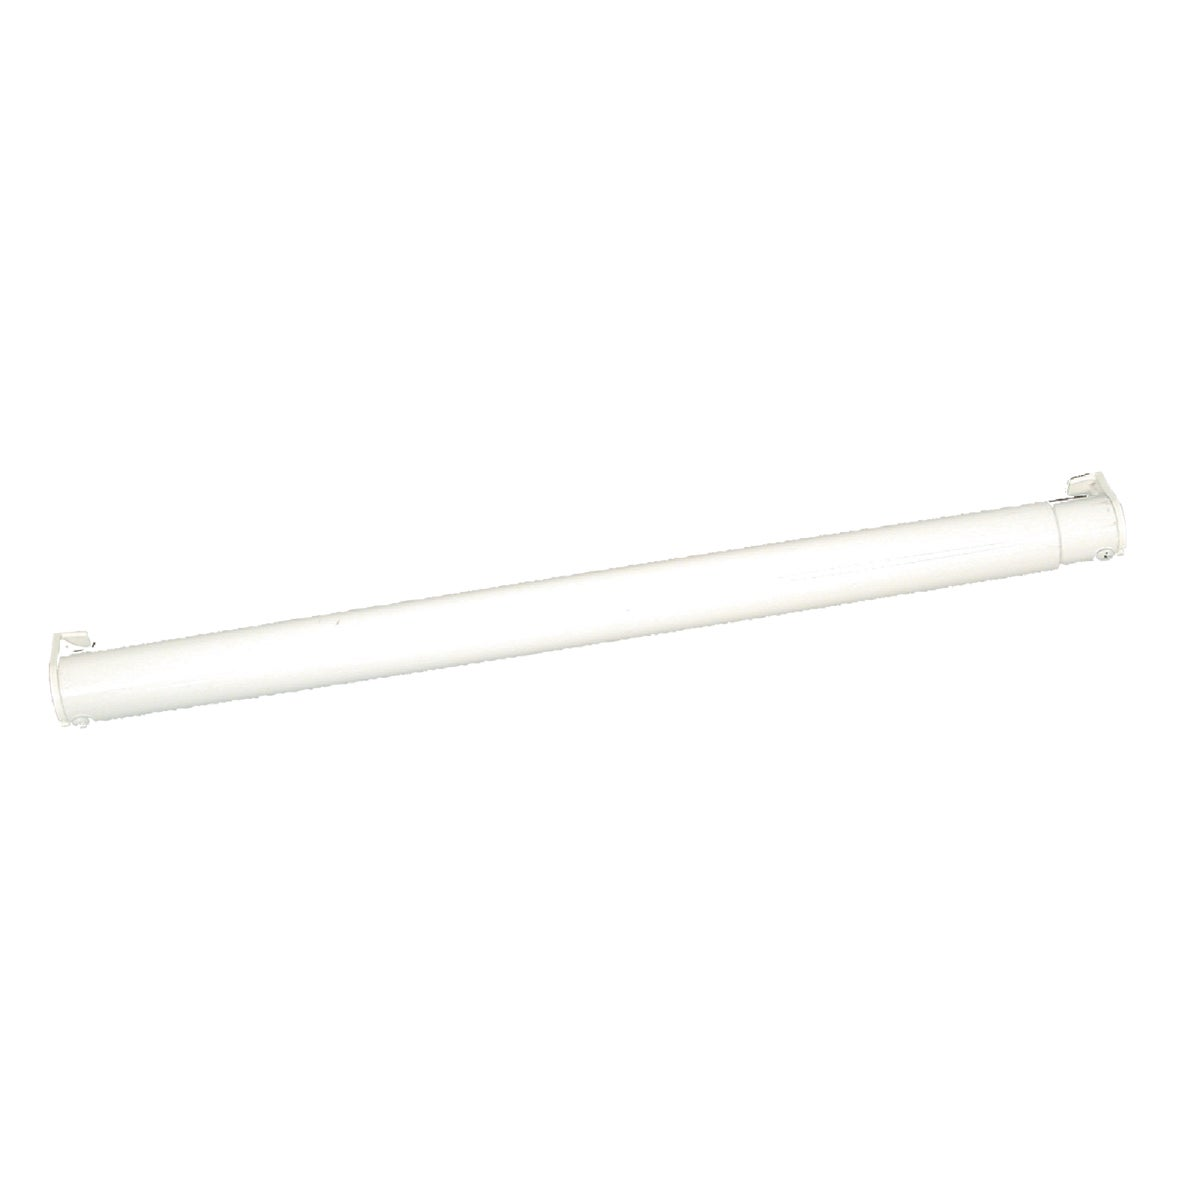 John Sterling Closet-Pro 1-1/4 In. Adjustable Closet Rod, RP-0021-72/120